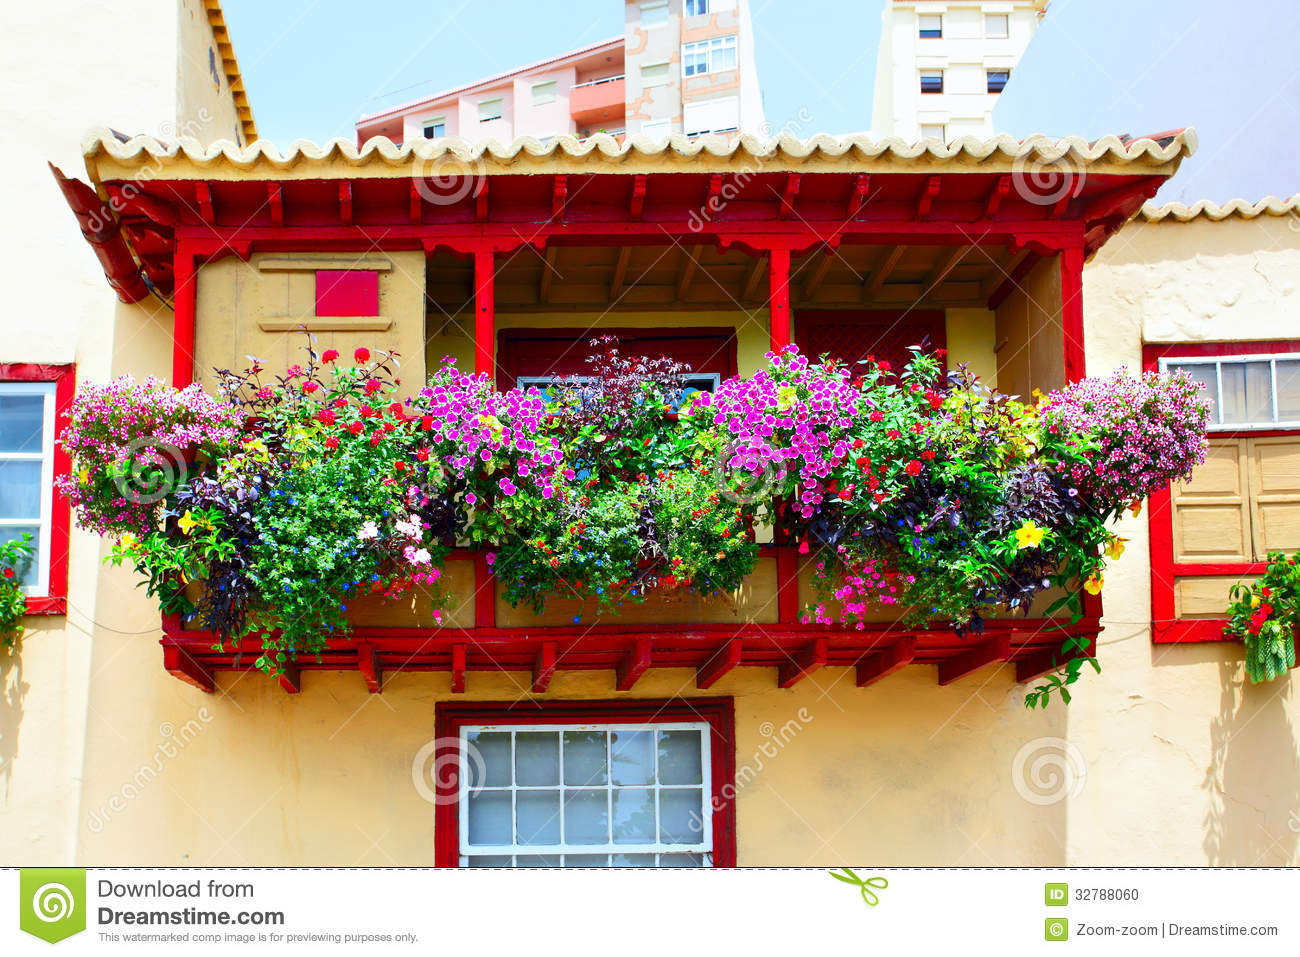 Balcony with flowers stock photo image 32788060 for Balcony flowers